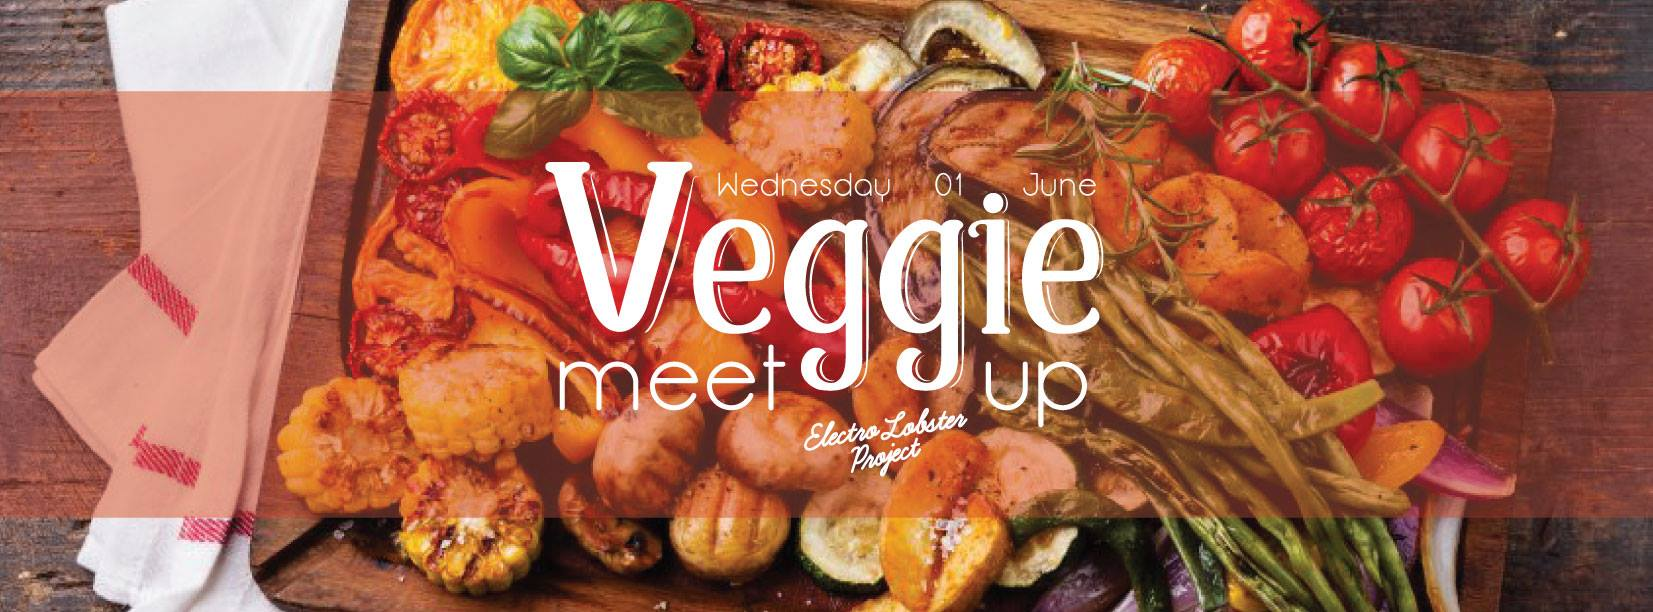 Malta Veggie Meetup June 2016